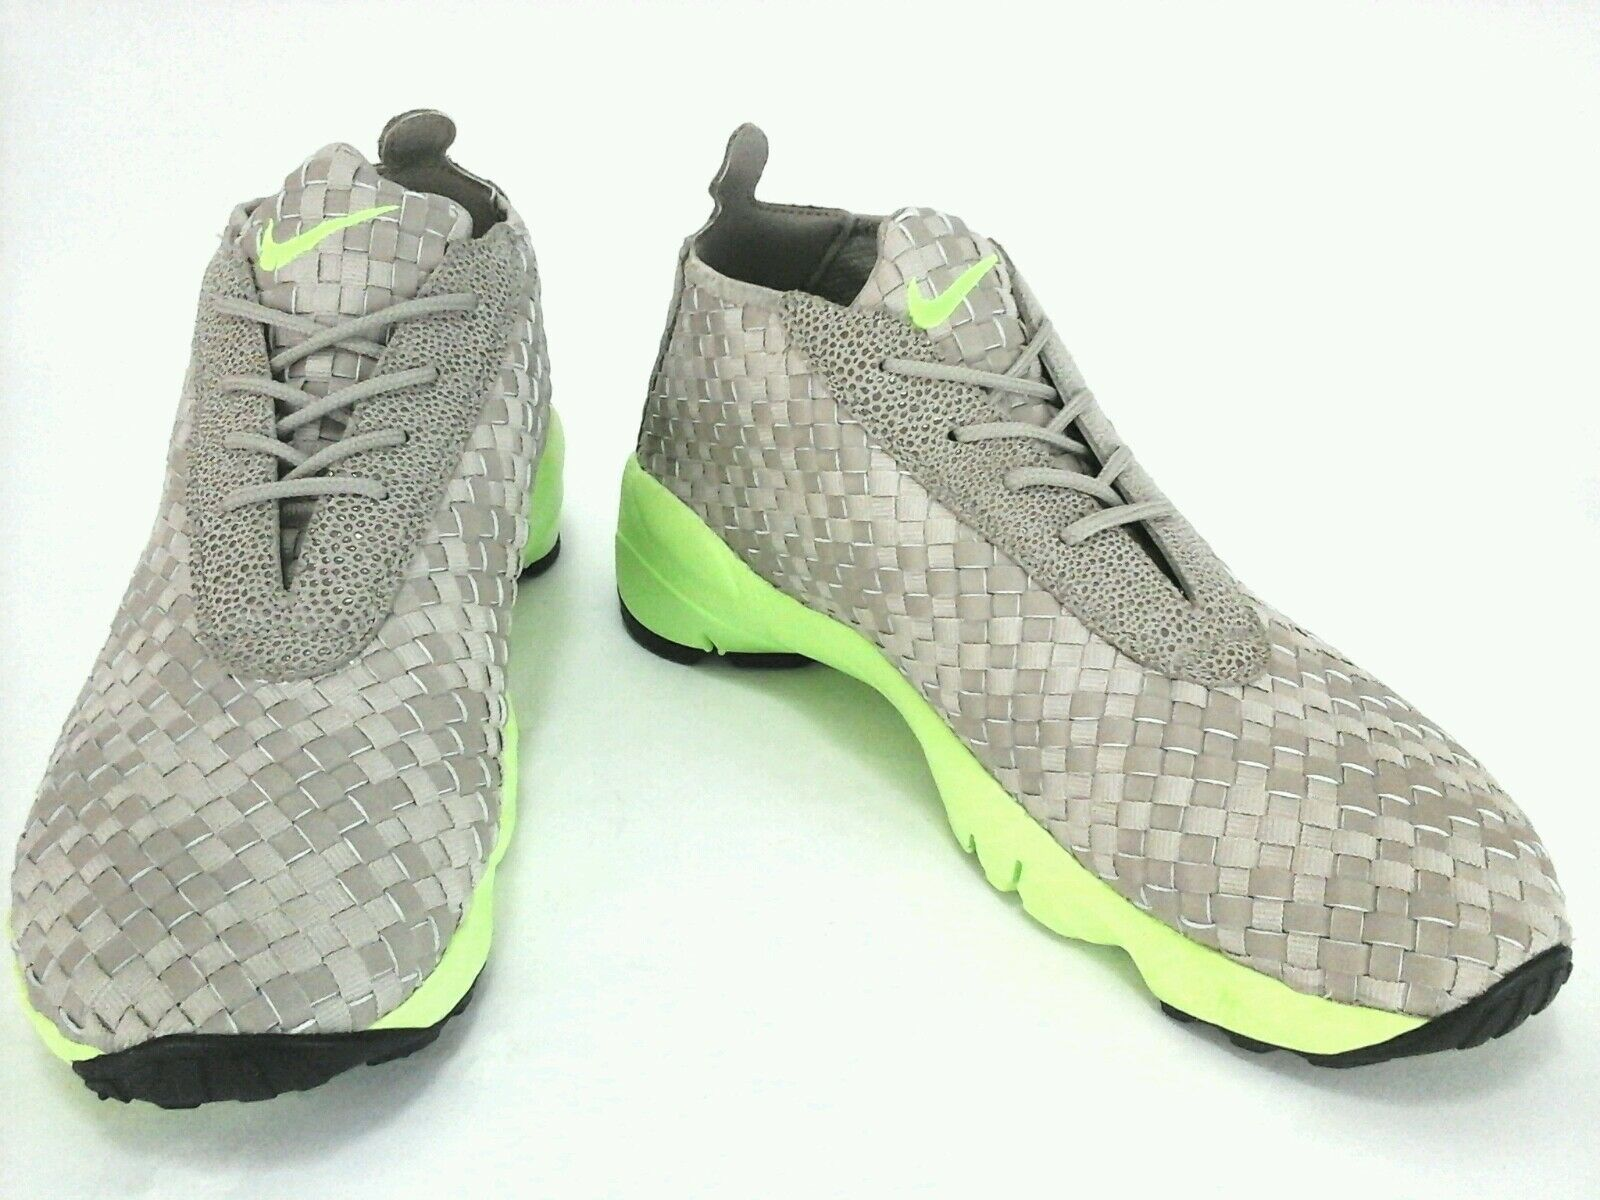 Nike Mens Mid High-Tops Beige Woven Shoes Sneakers US 12 New Rare